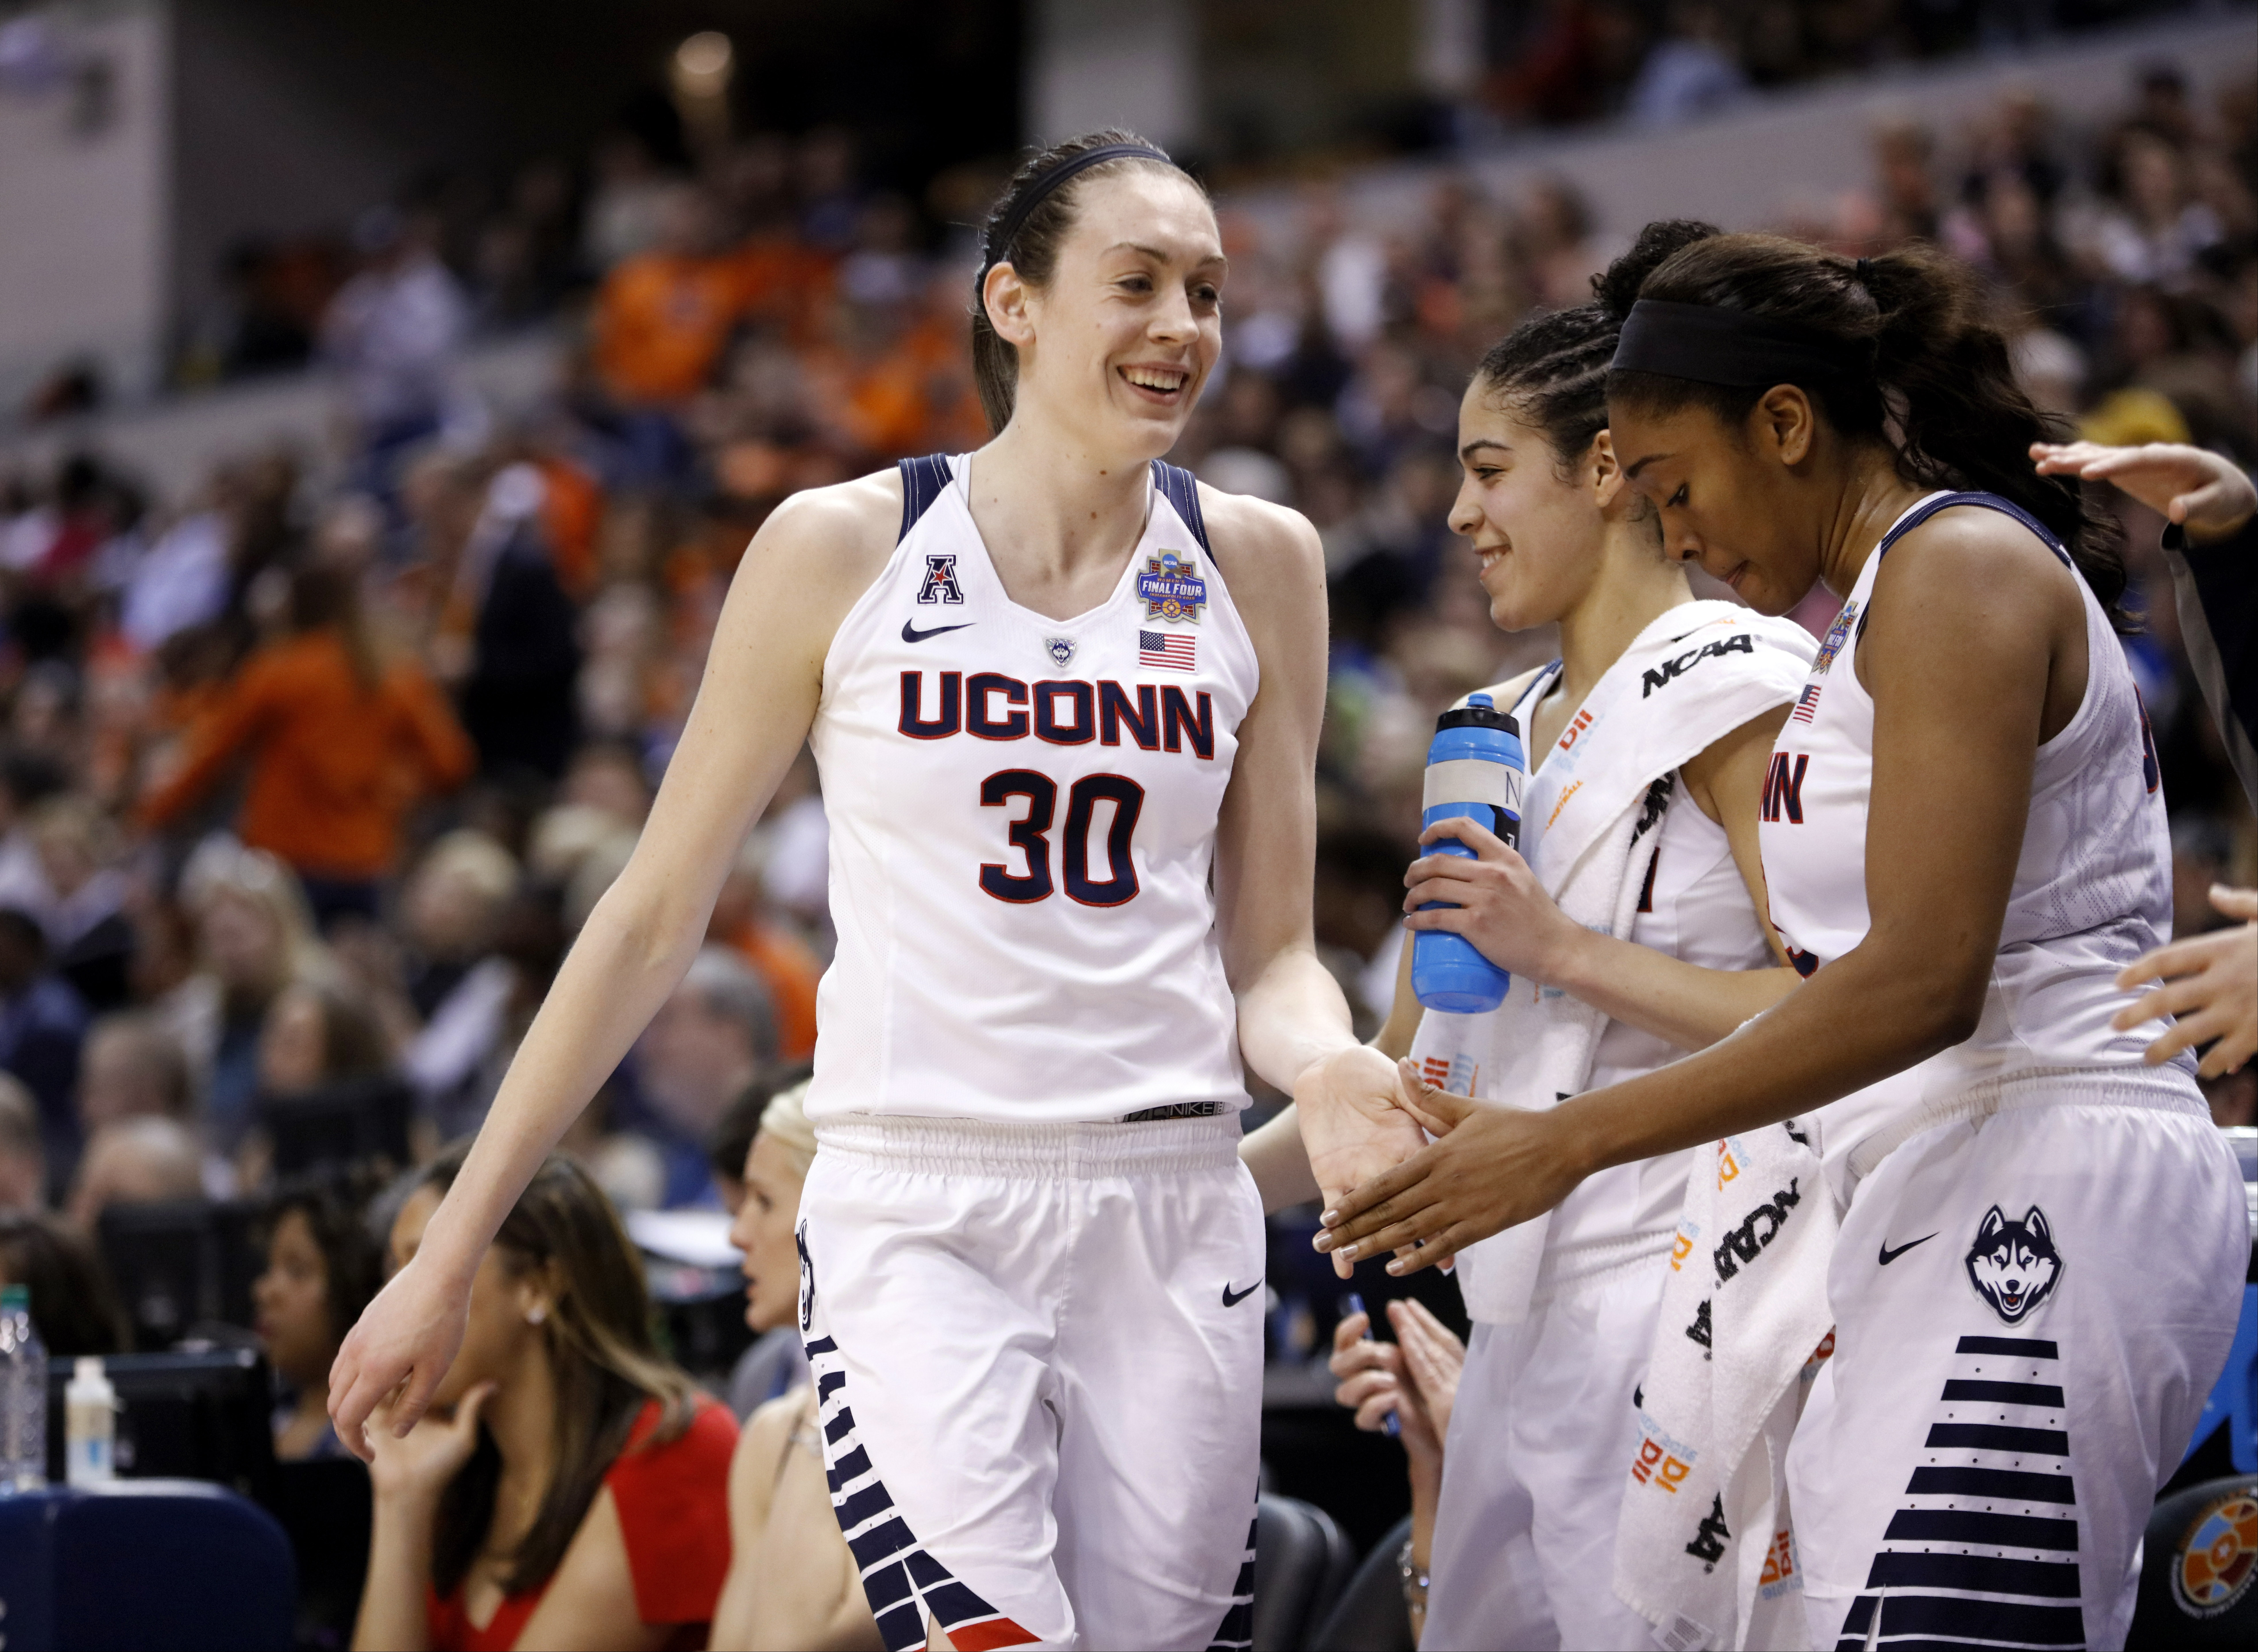 Connecticut's Breanna Stewart (30) comes out of the game late in the second half of a national semifinal game against Oregon State, at the women's Final Four in the NCAA college basketball tournament Sunday, April 3, 2016, in Indianapolis. Connecticut won